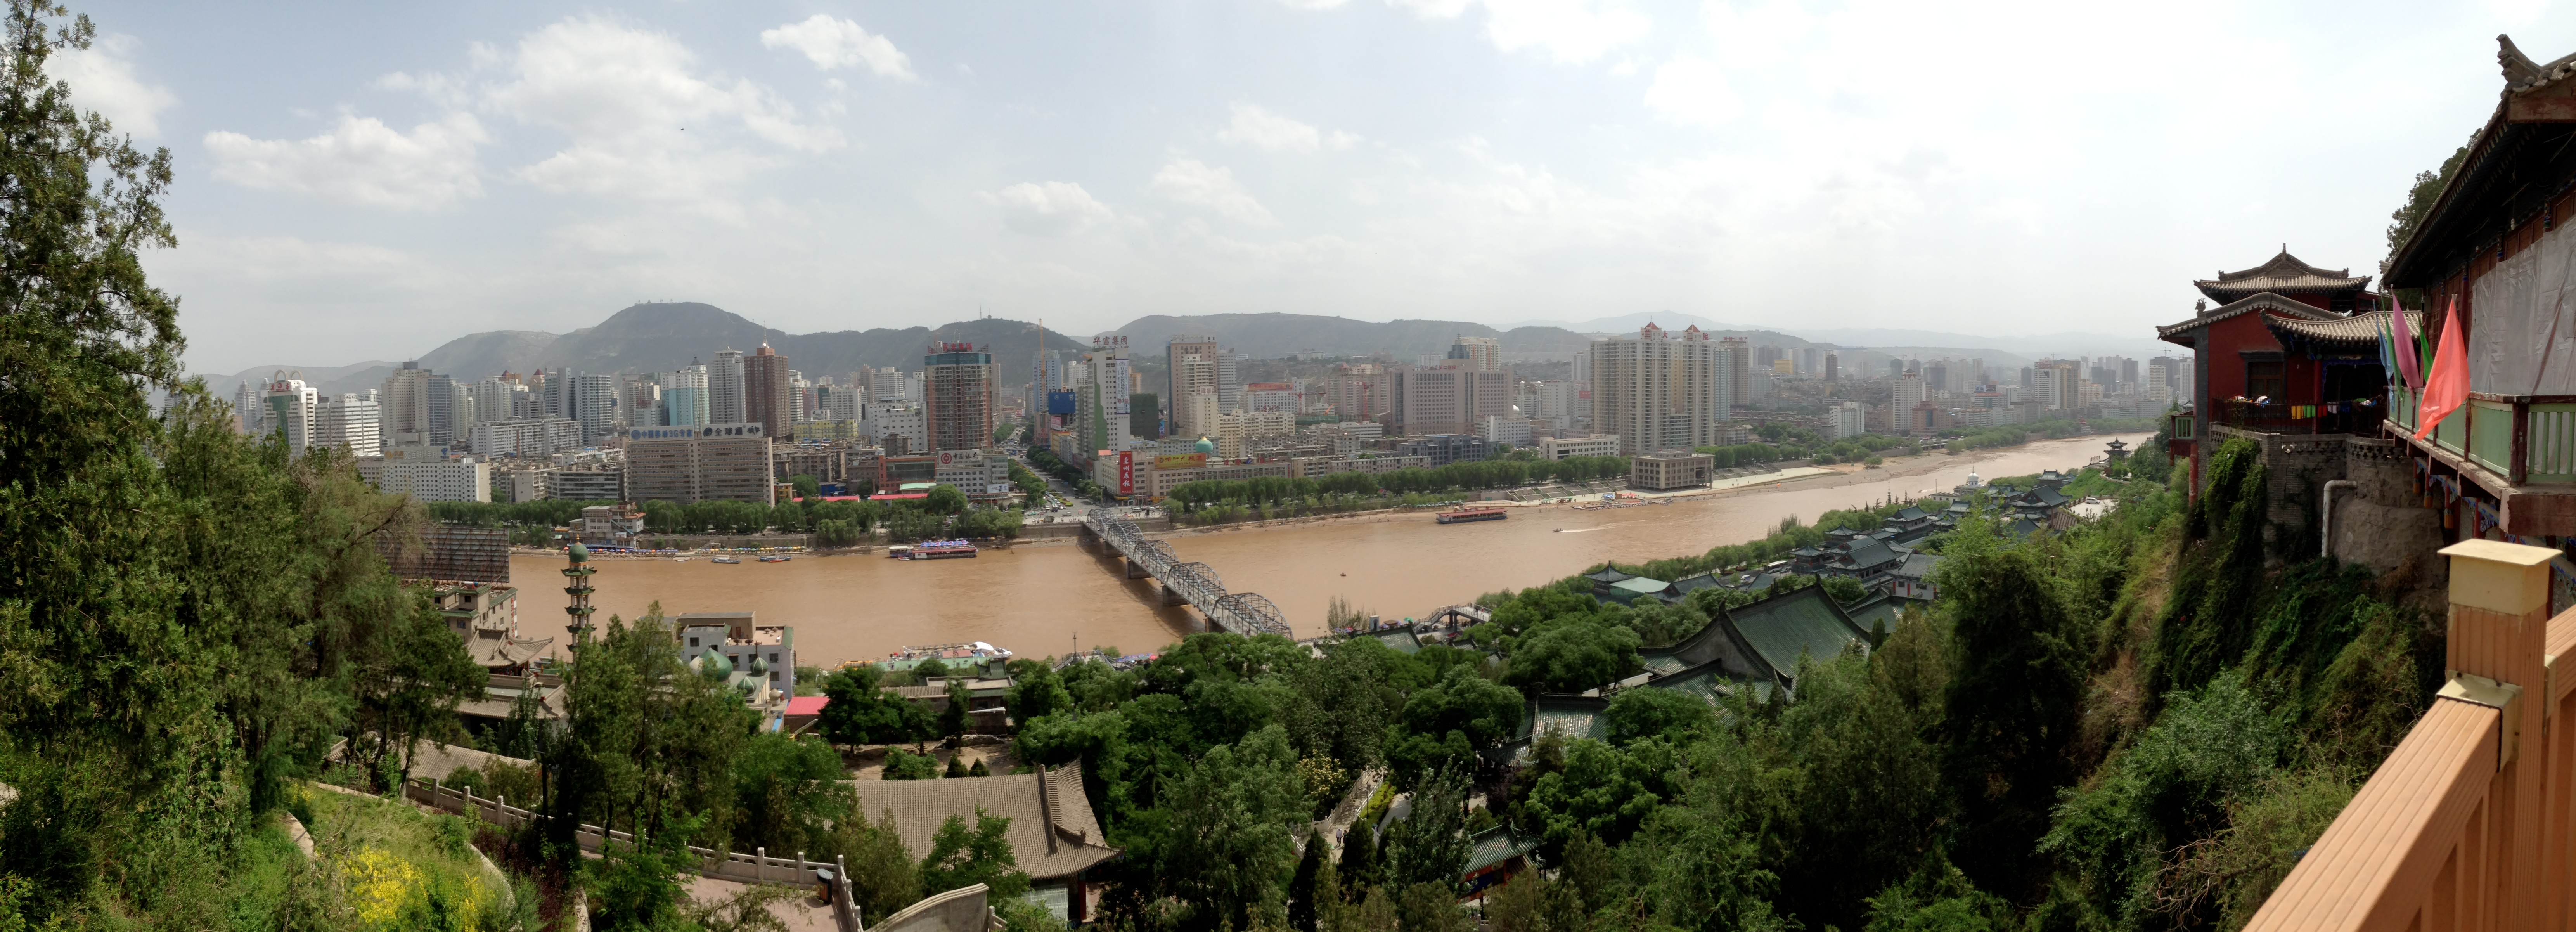 Panoramic View of Lanzhou from the White Hills Pagoda, June 8